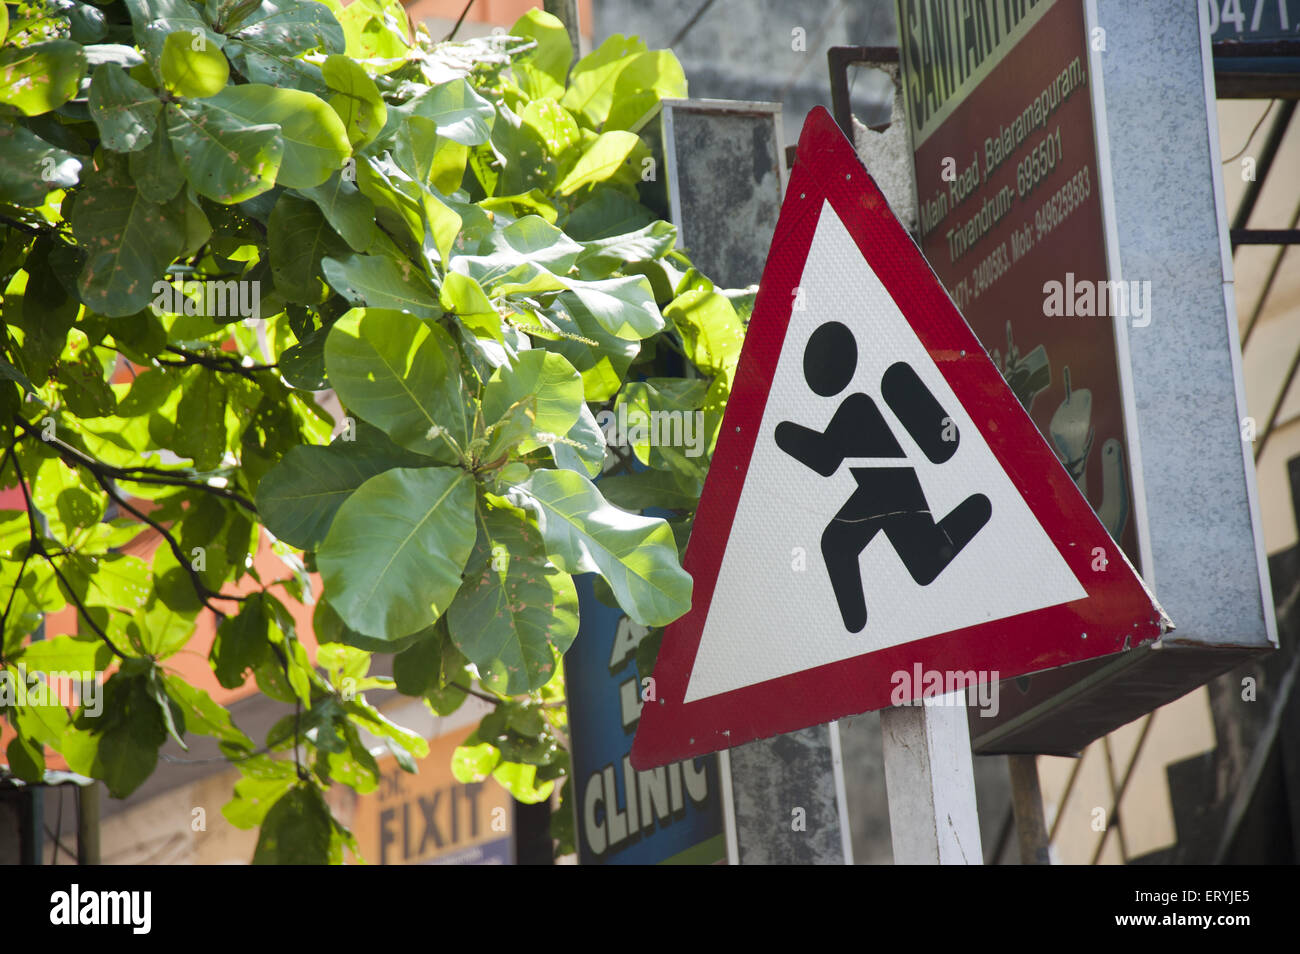 sign board on road India - Stock Image